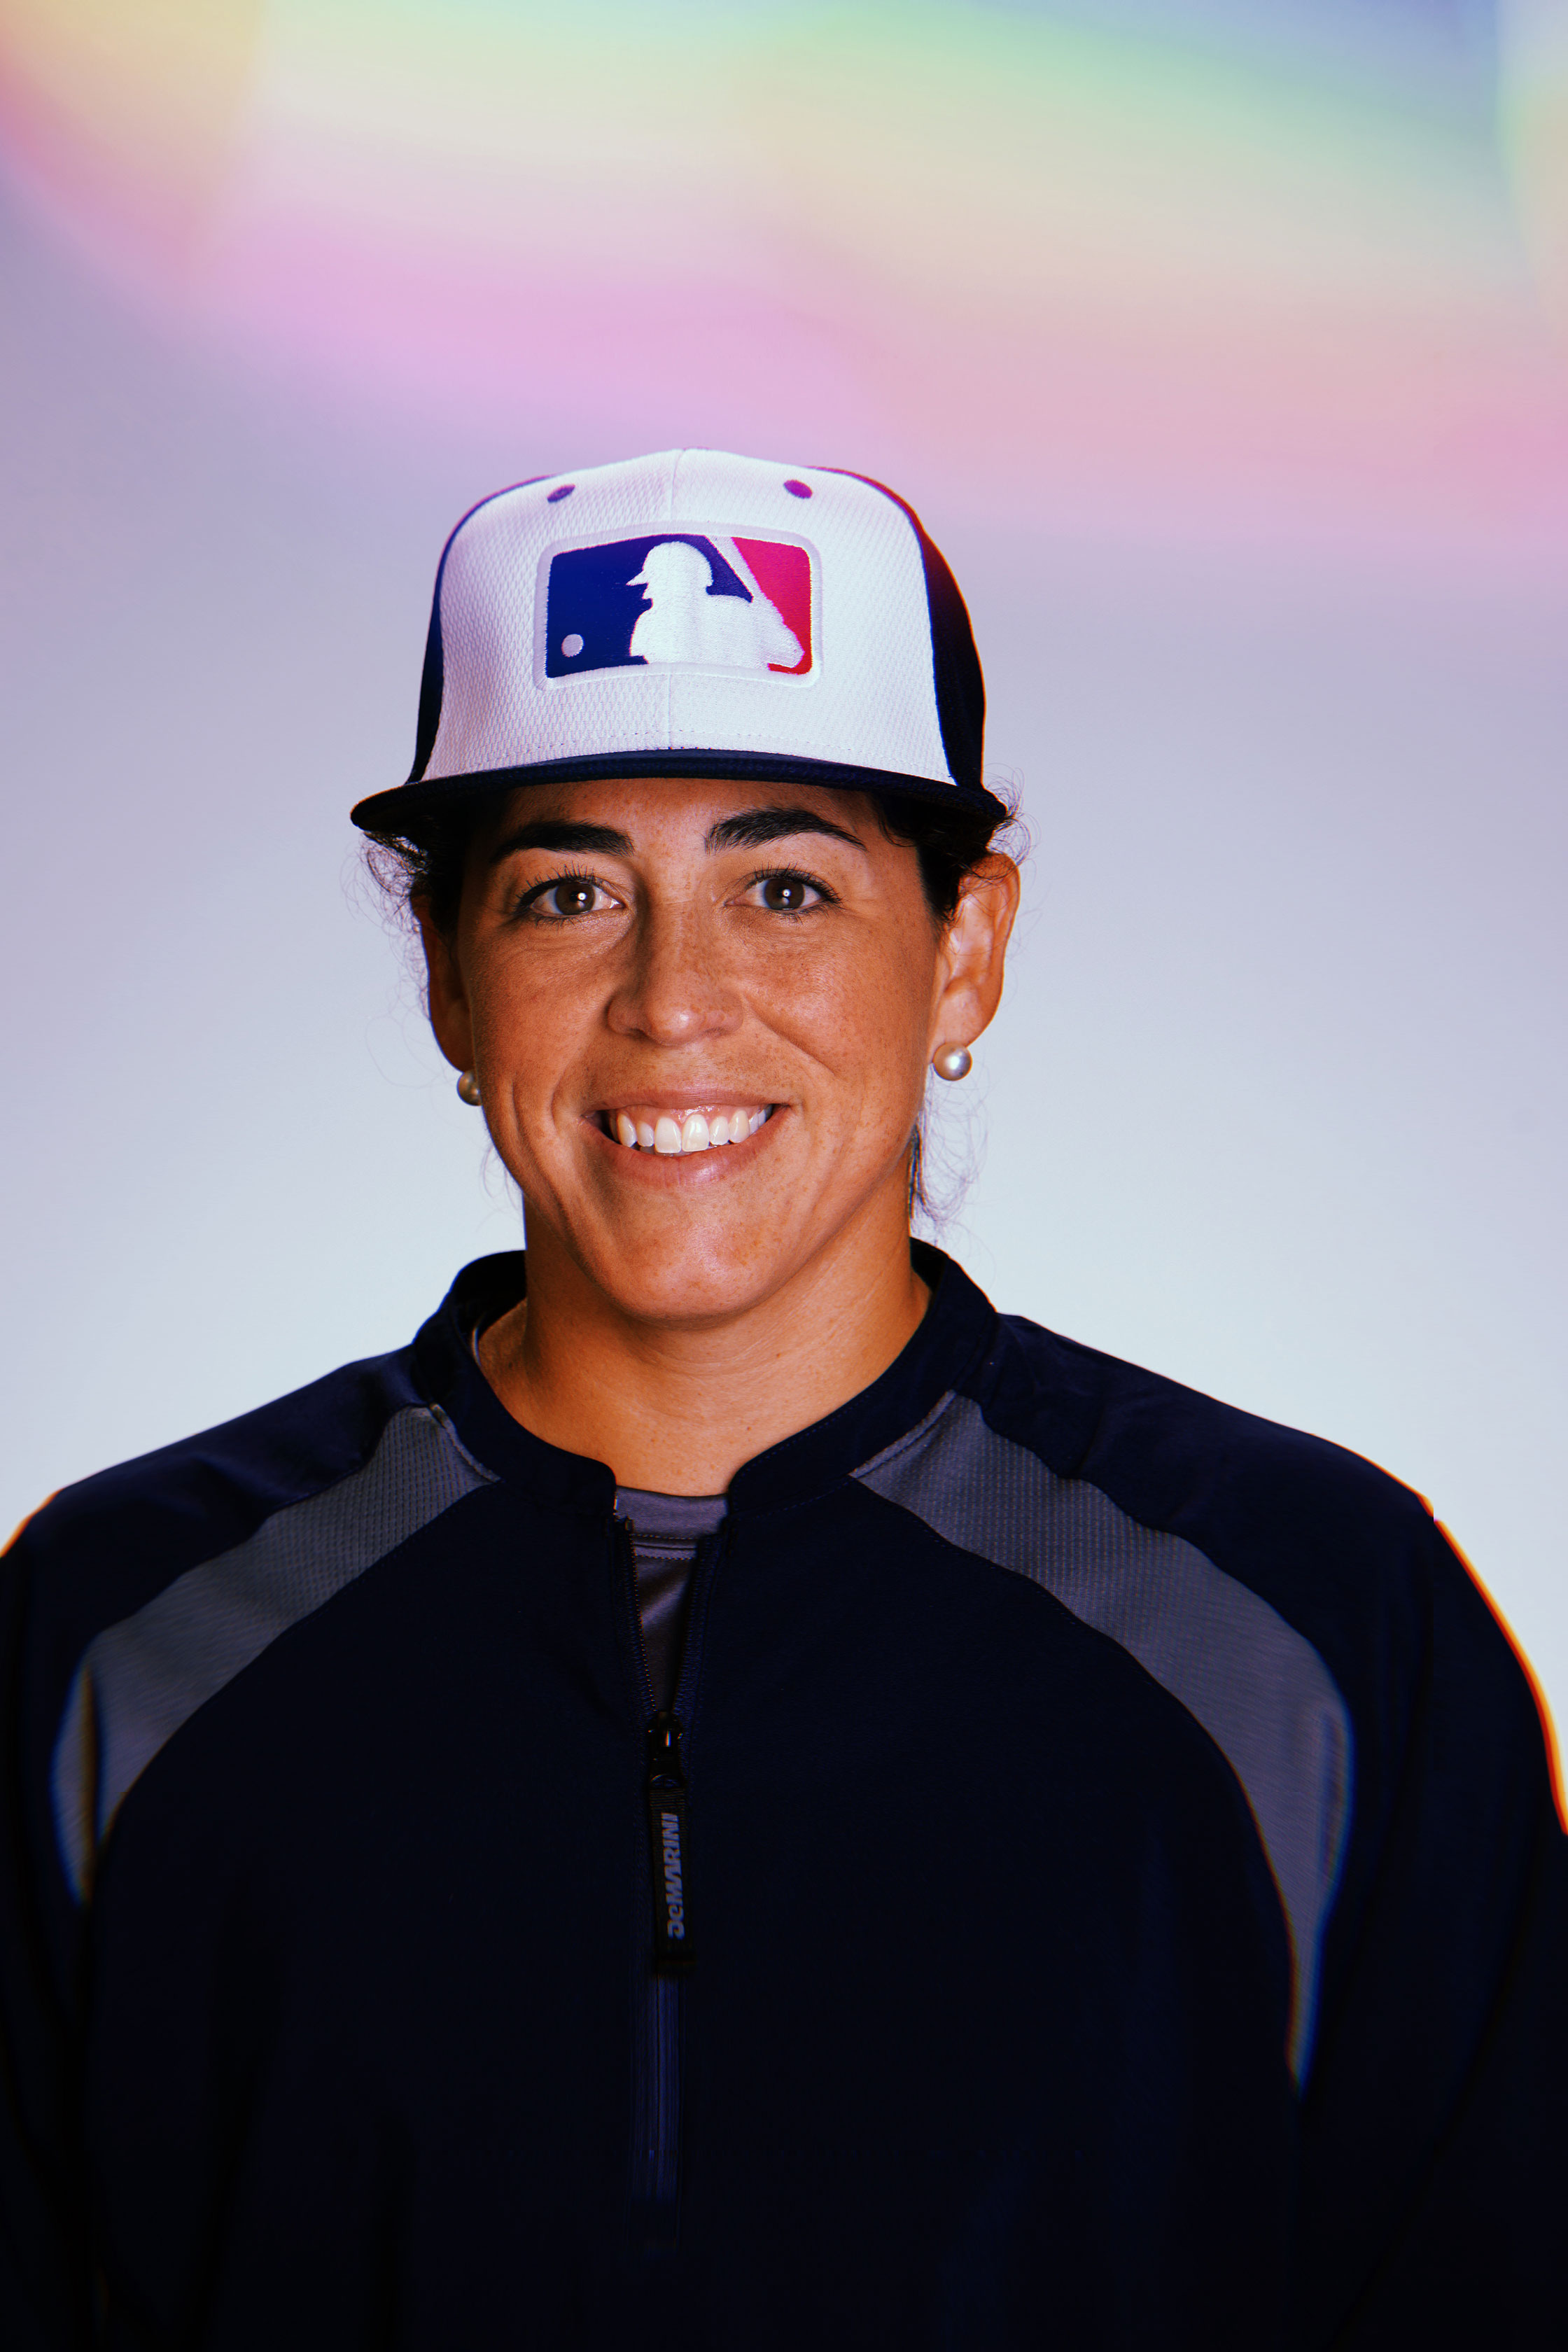 photo of athlete and coach, Veronica Alvarez, a brown woman smiling and wearing a blue activewear top and an MLB baseball cap